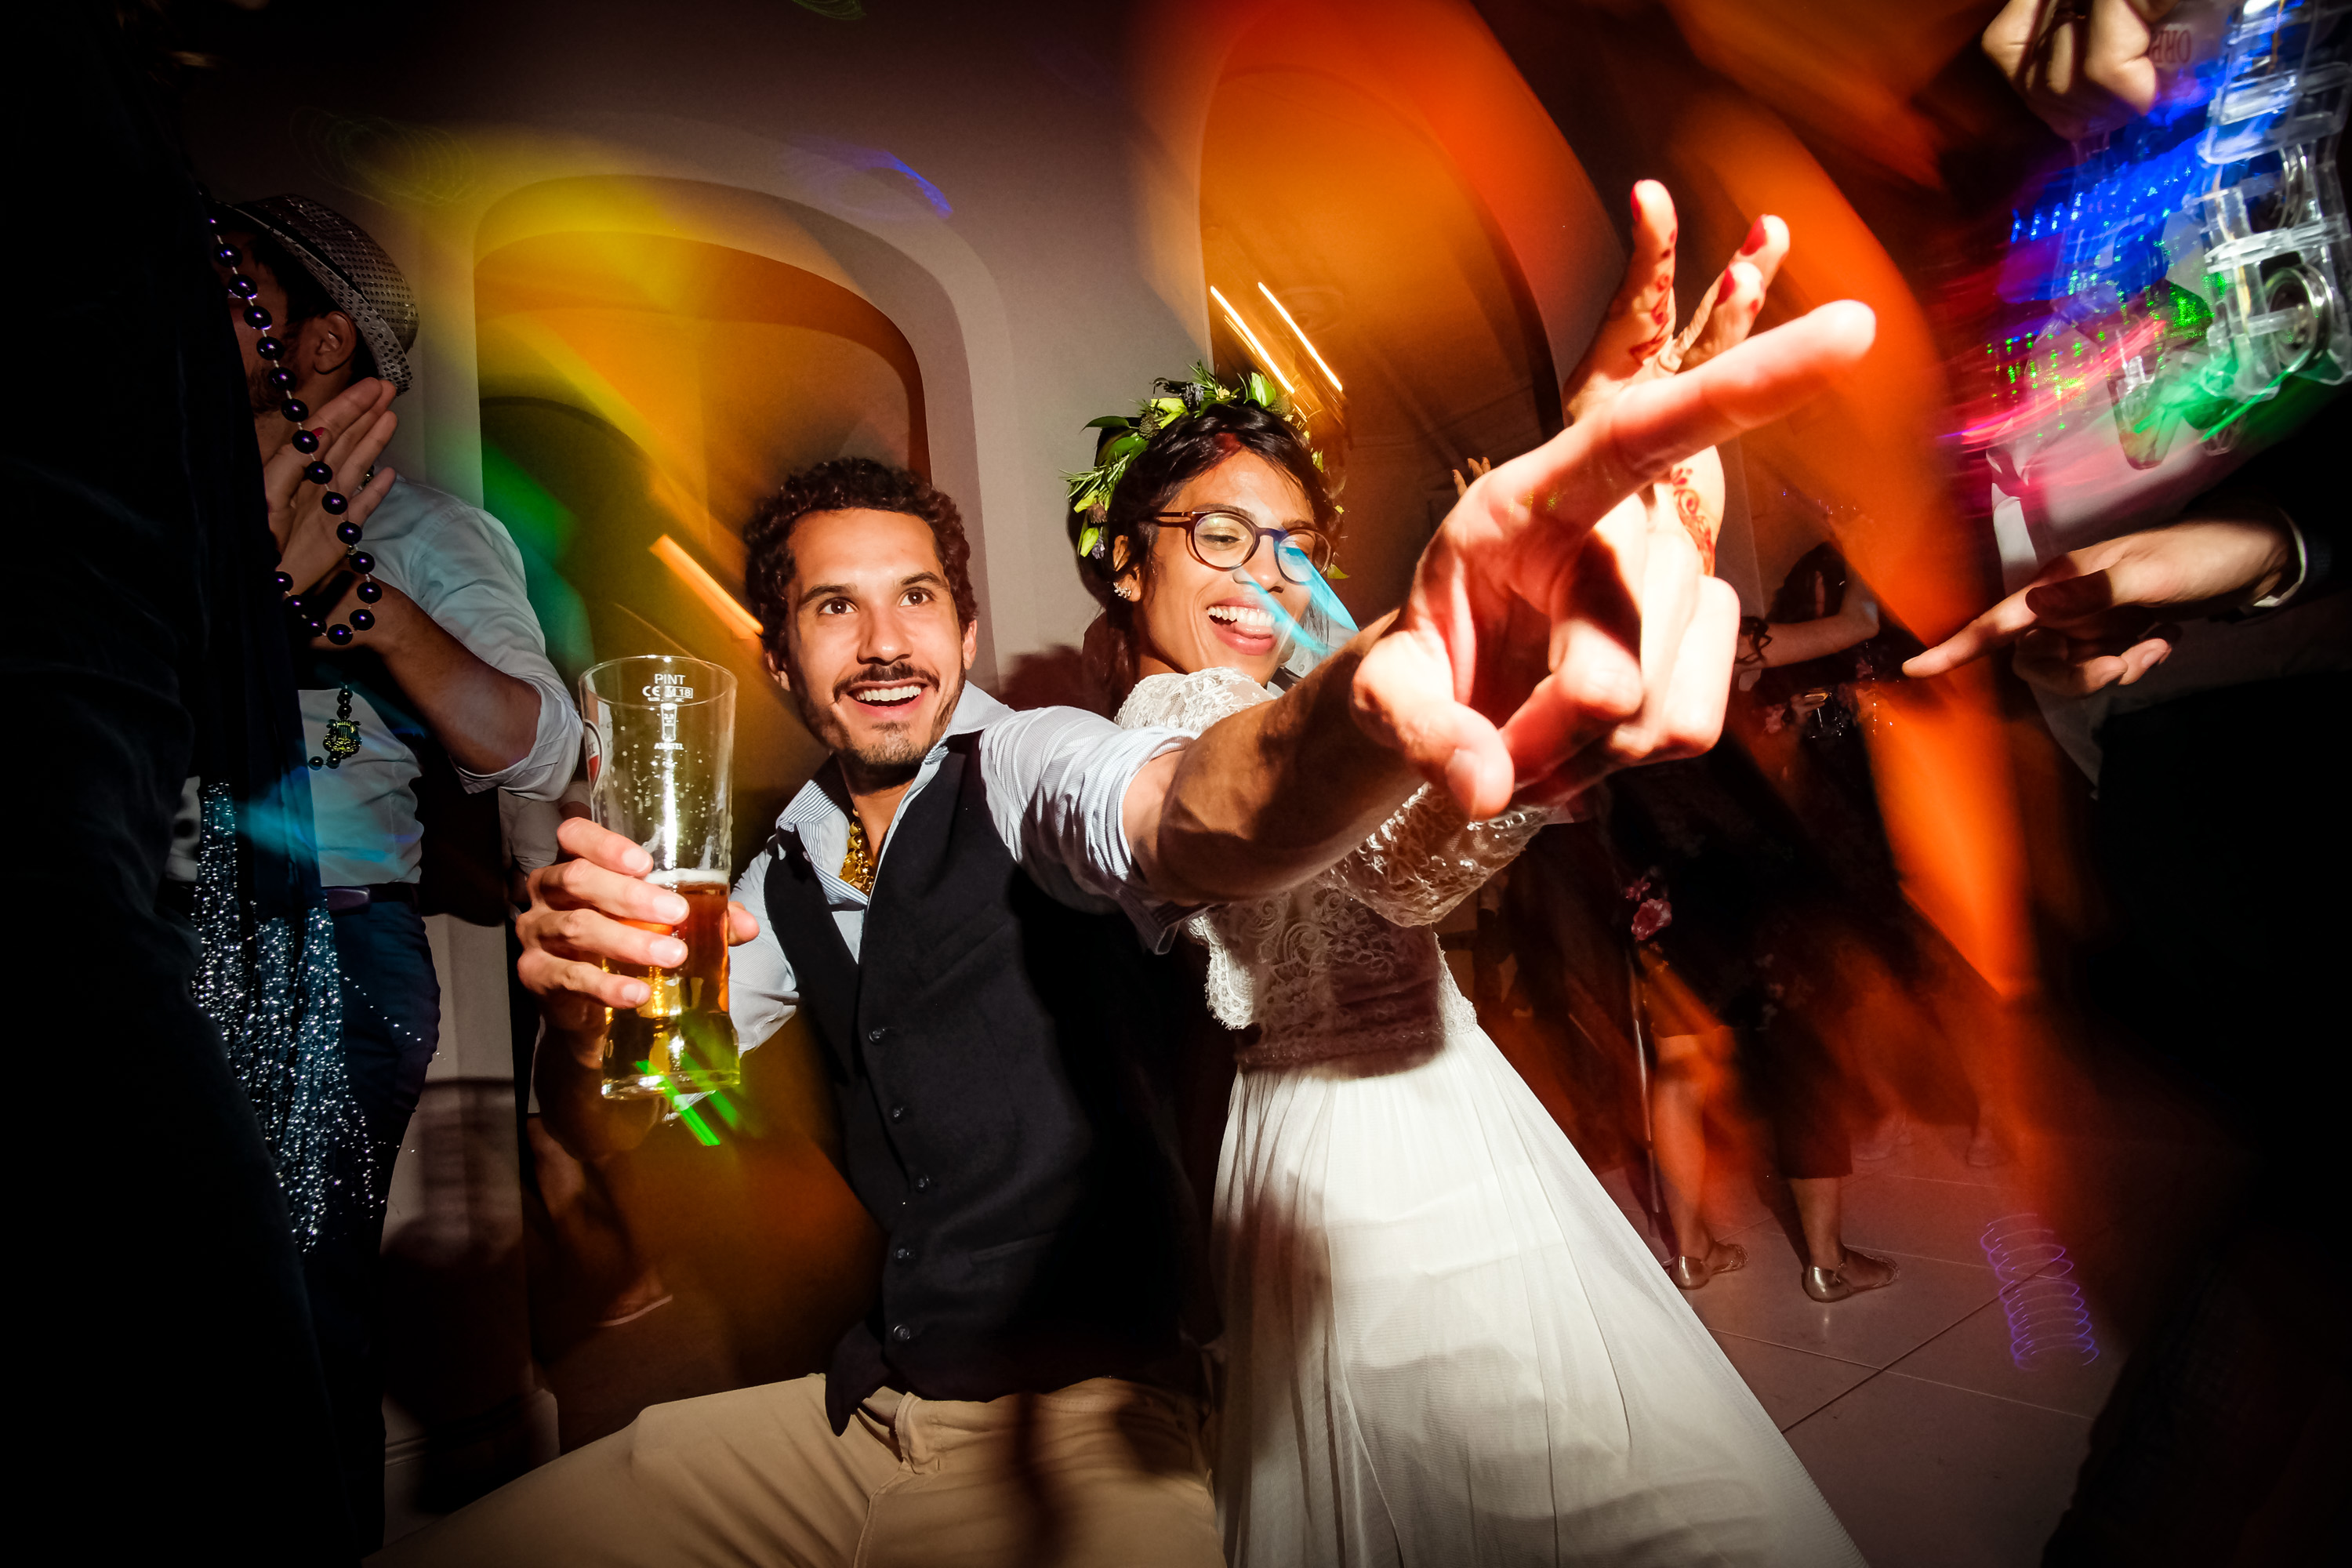 Colorful photo of couple dancing at wedding reception by Andrew Billington - UK wedding photographer